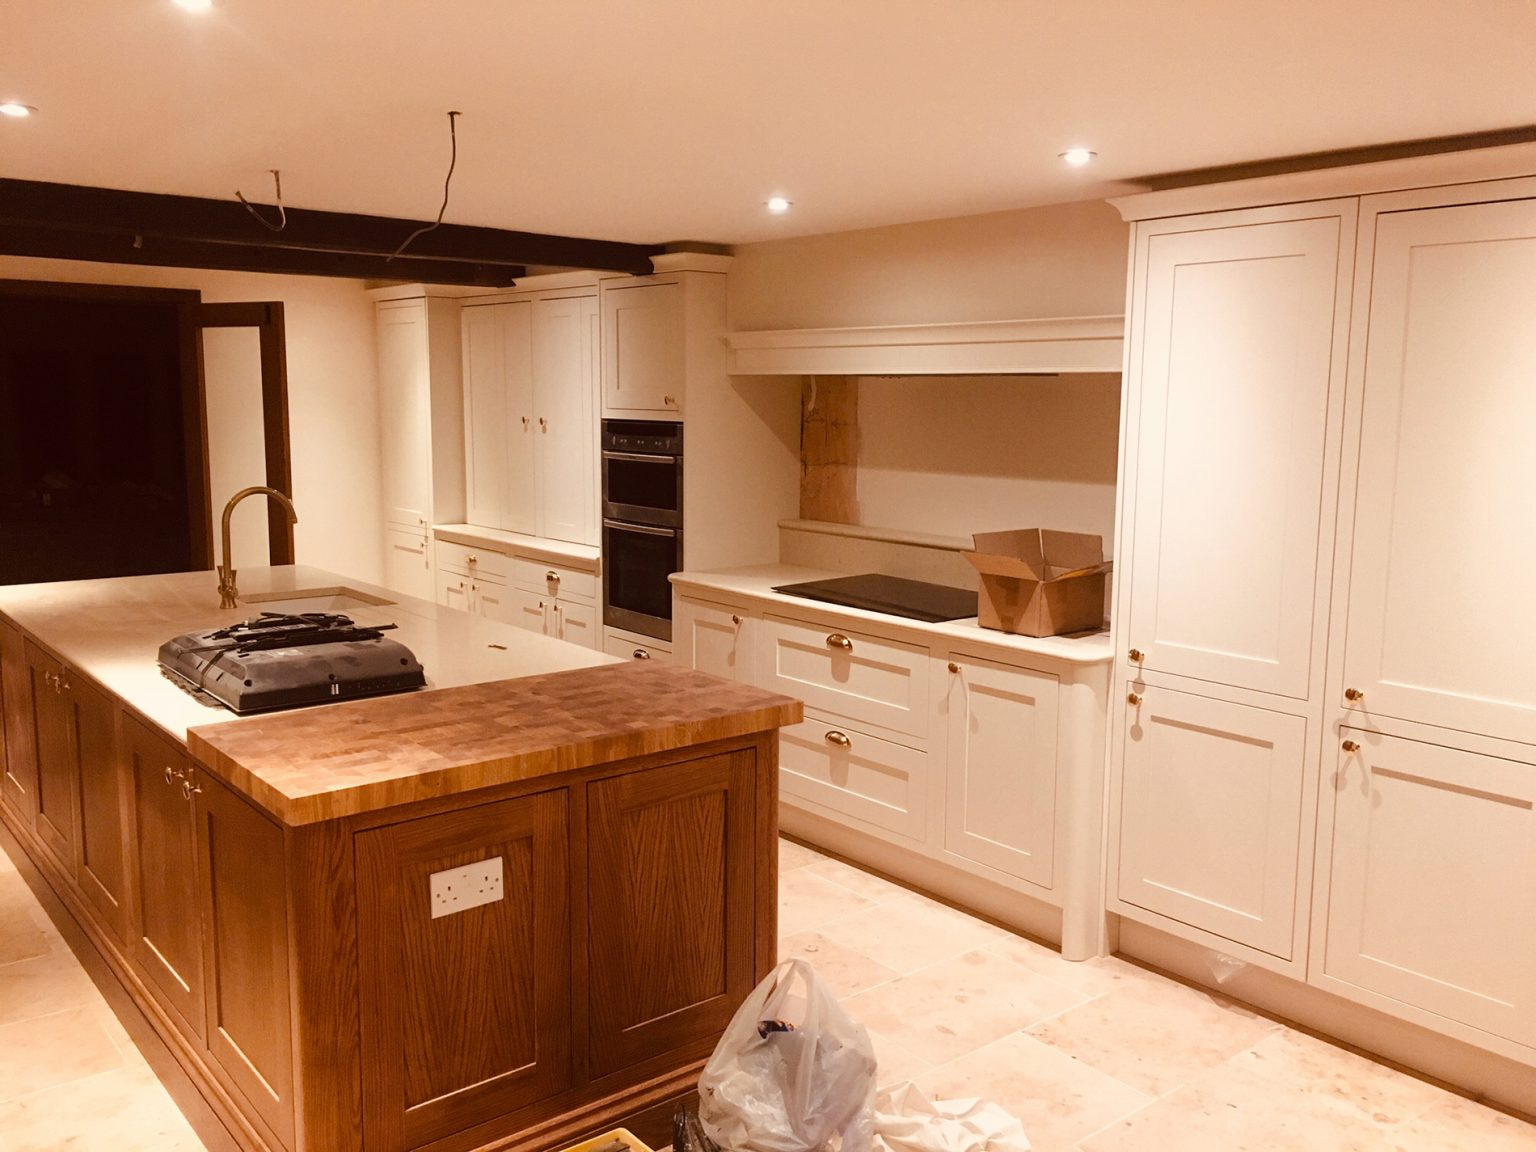 Home Renovation West Yorkshire 7